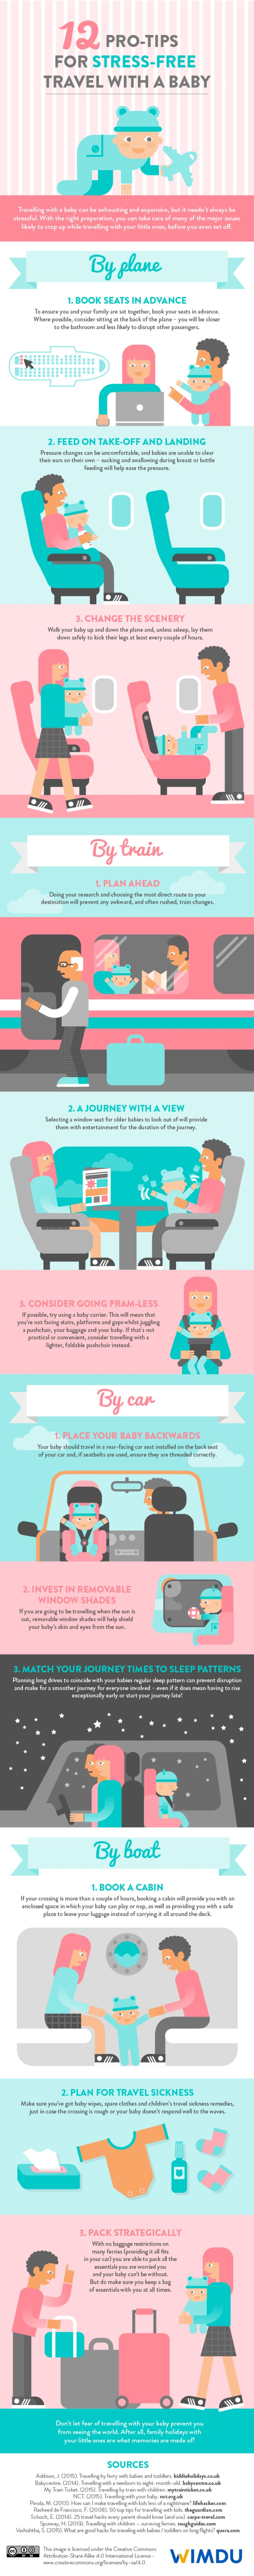 12-pro-tips-for-stress-free-travel-with-a-baby